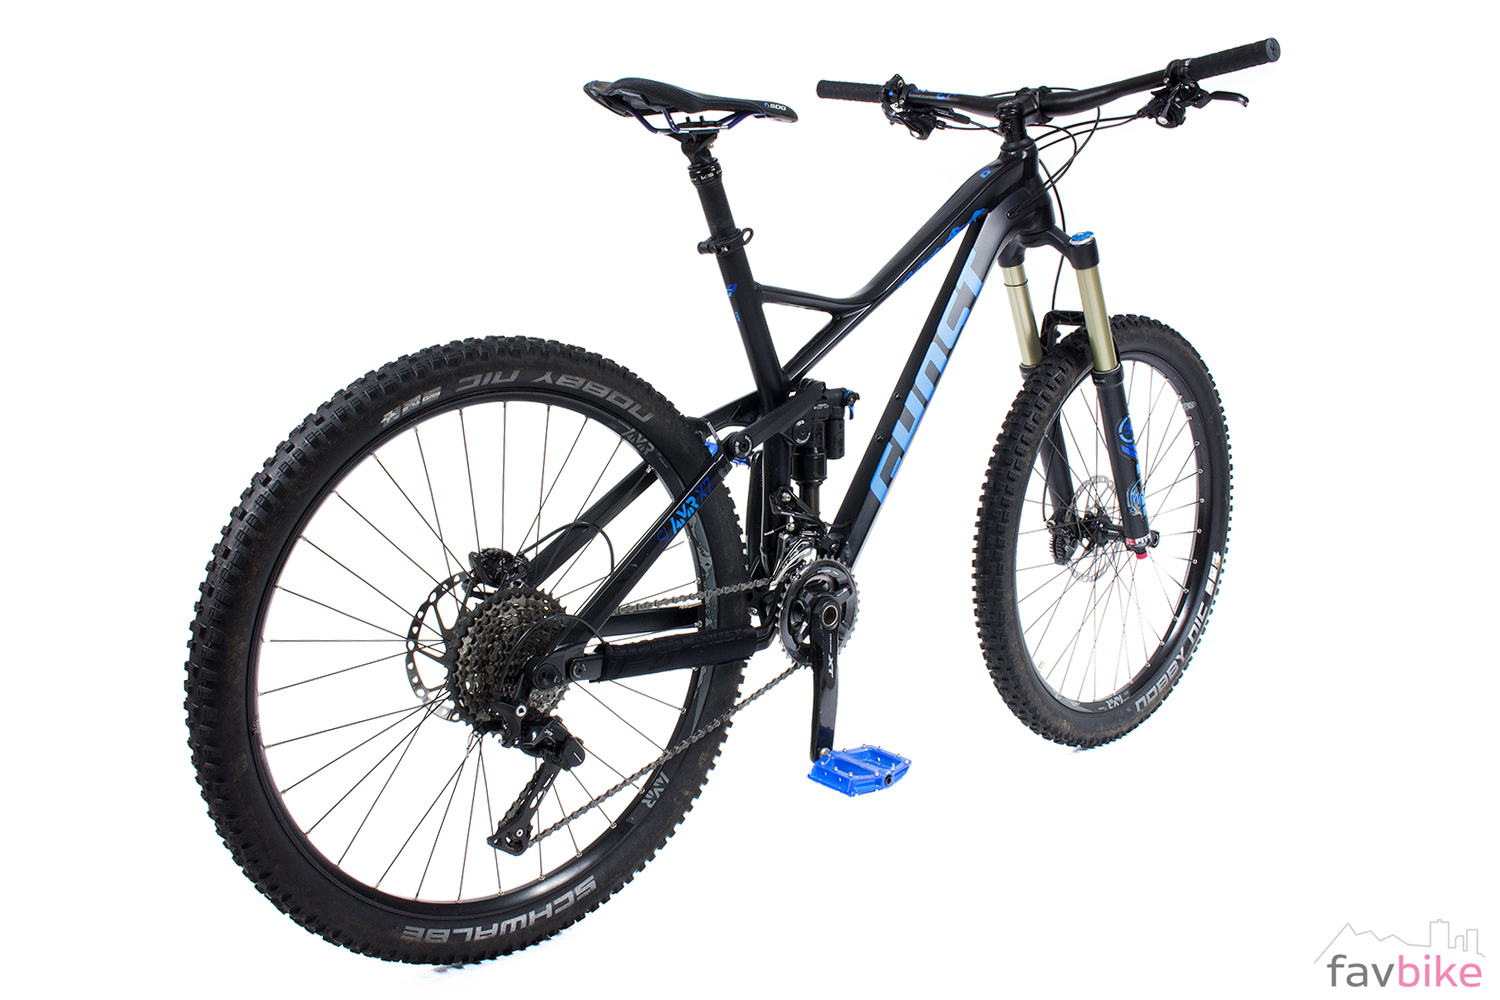 ghost sl amr x 7 all mountain bike im test. Black Bedroom Furniture Sets. Home Design Ideas